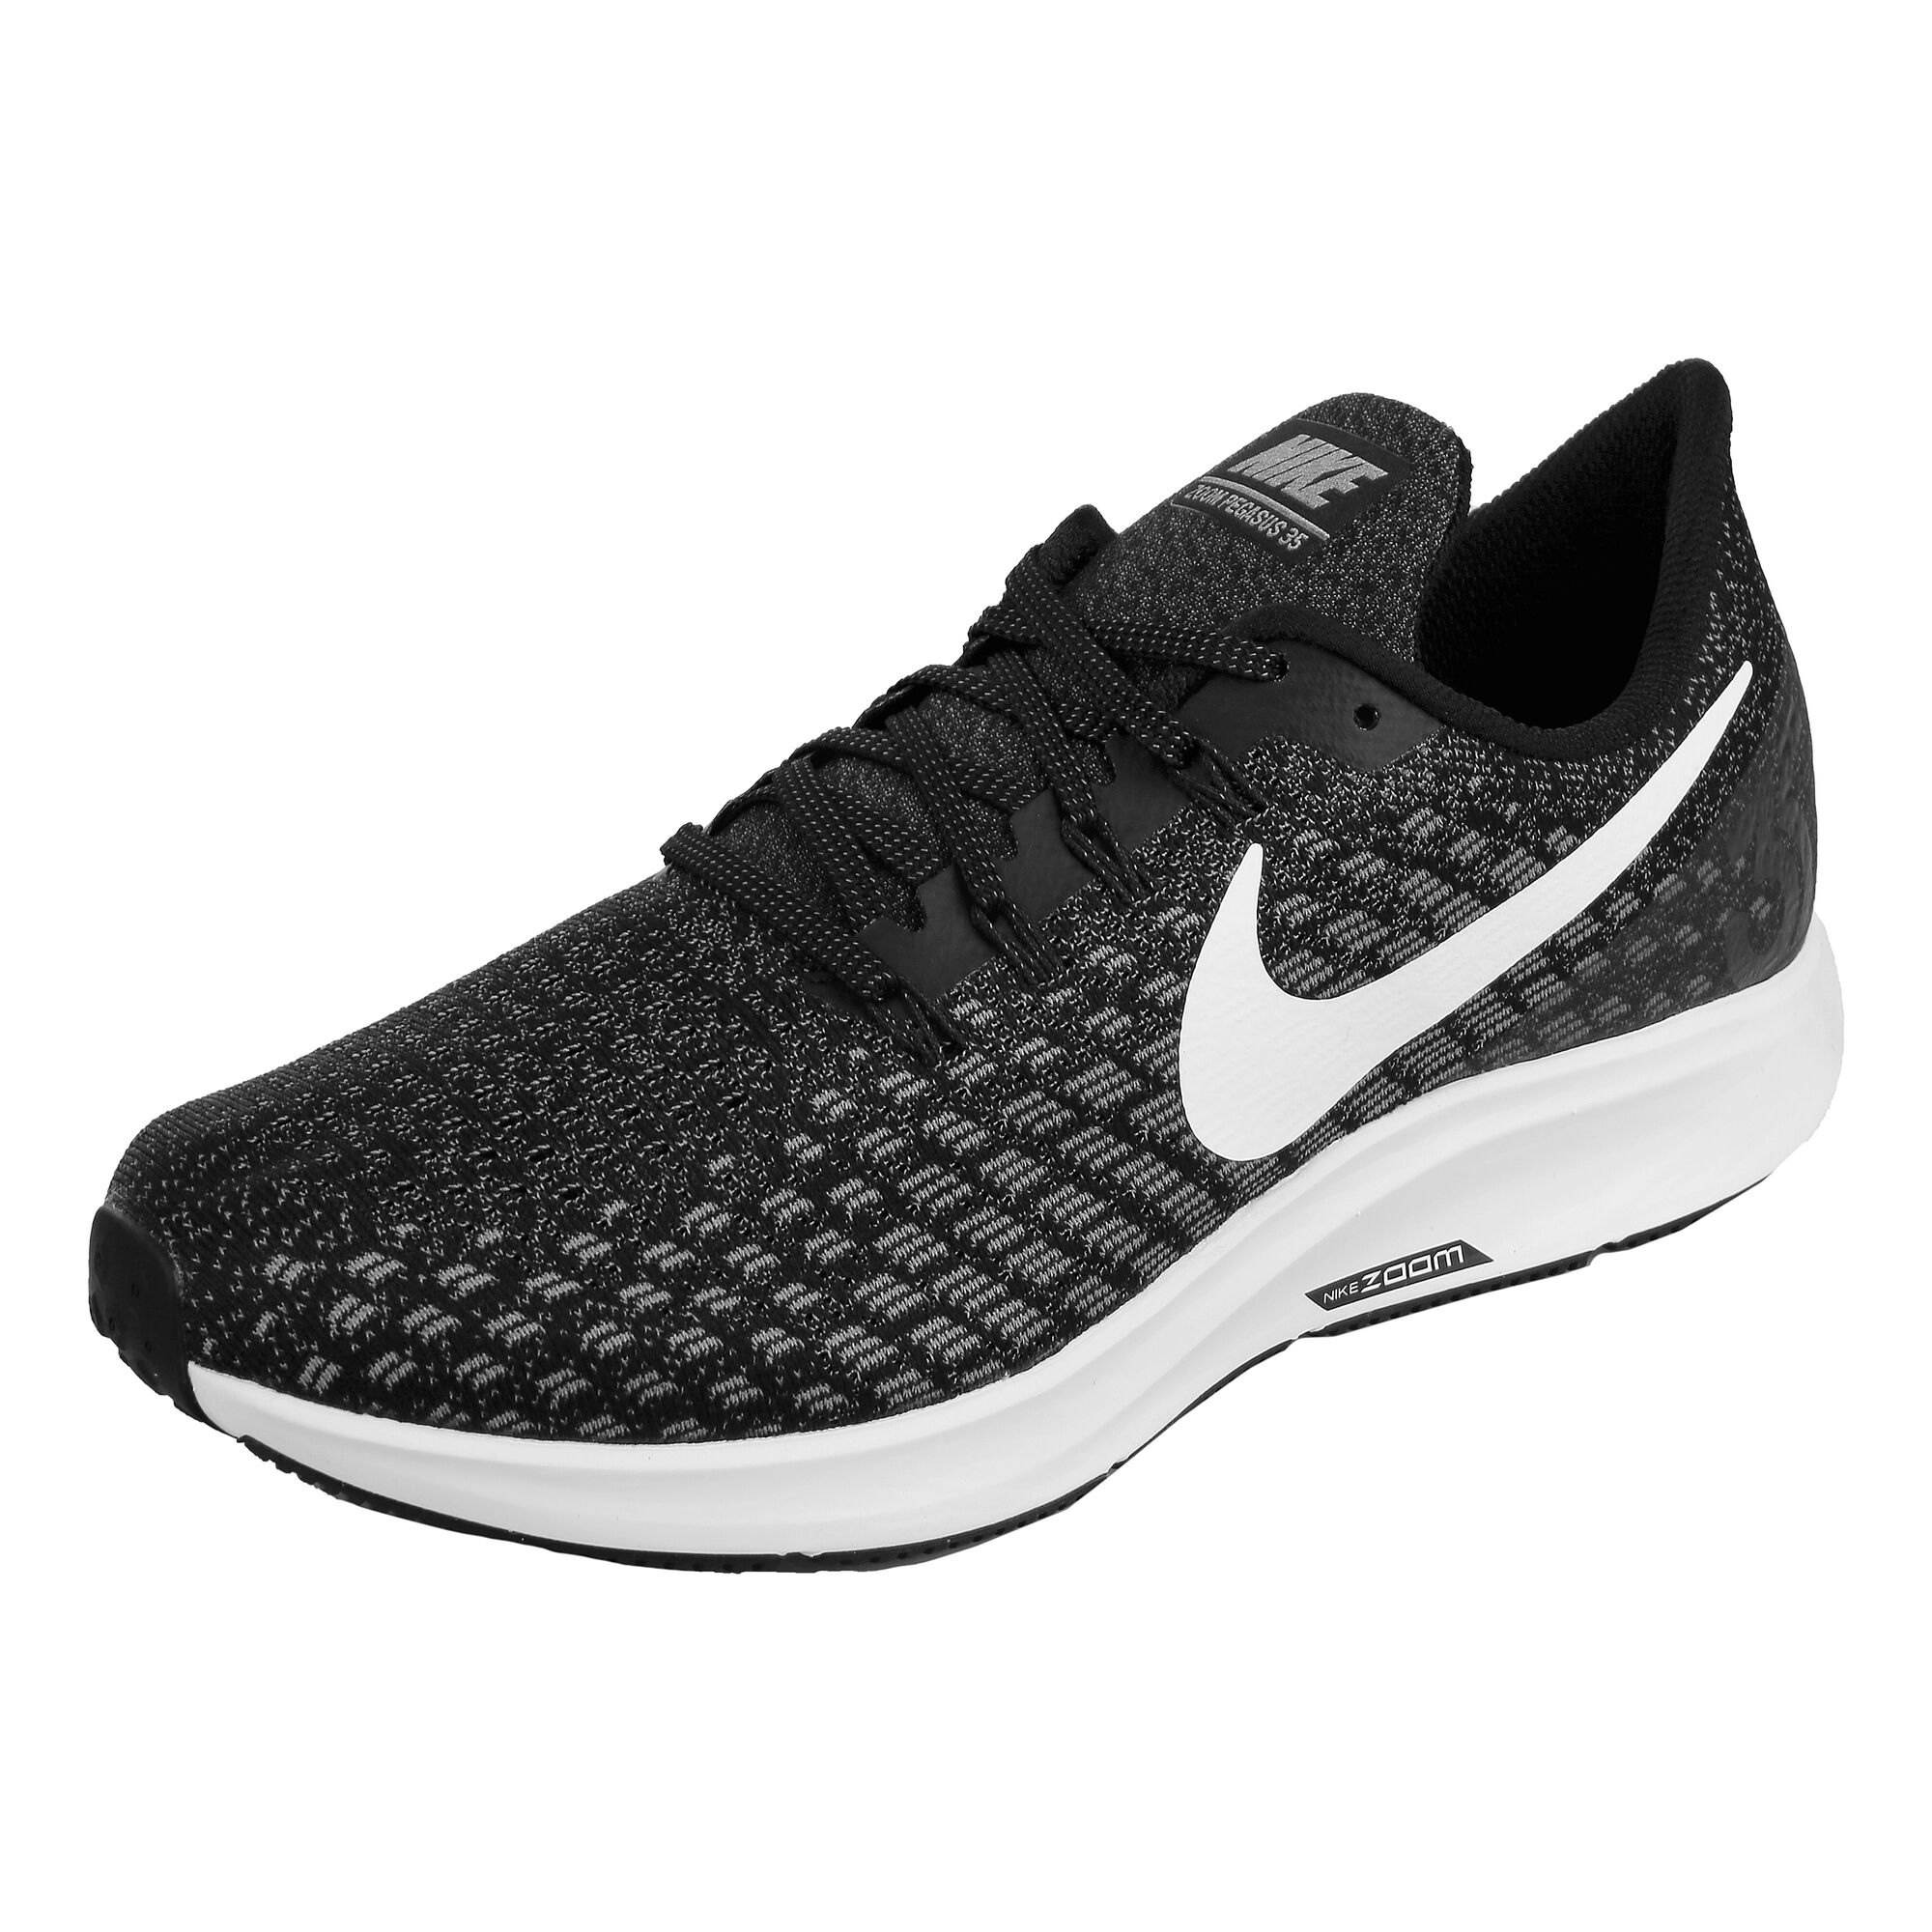 new concept 35cb9 78bba Nike Air Zoom Pegasus 35 Neutral Running Shoe Men - Black, Grey